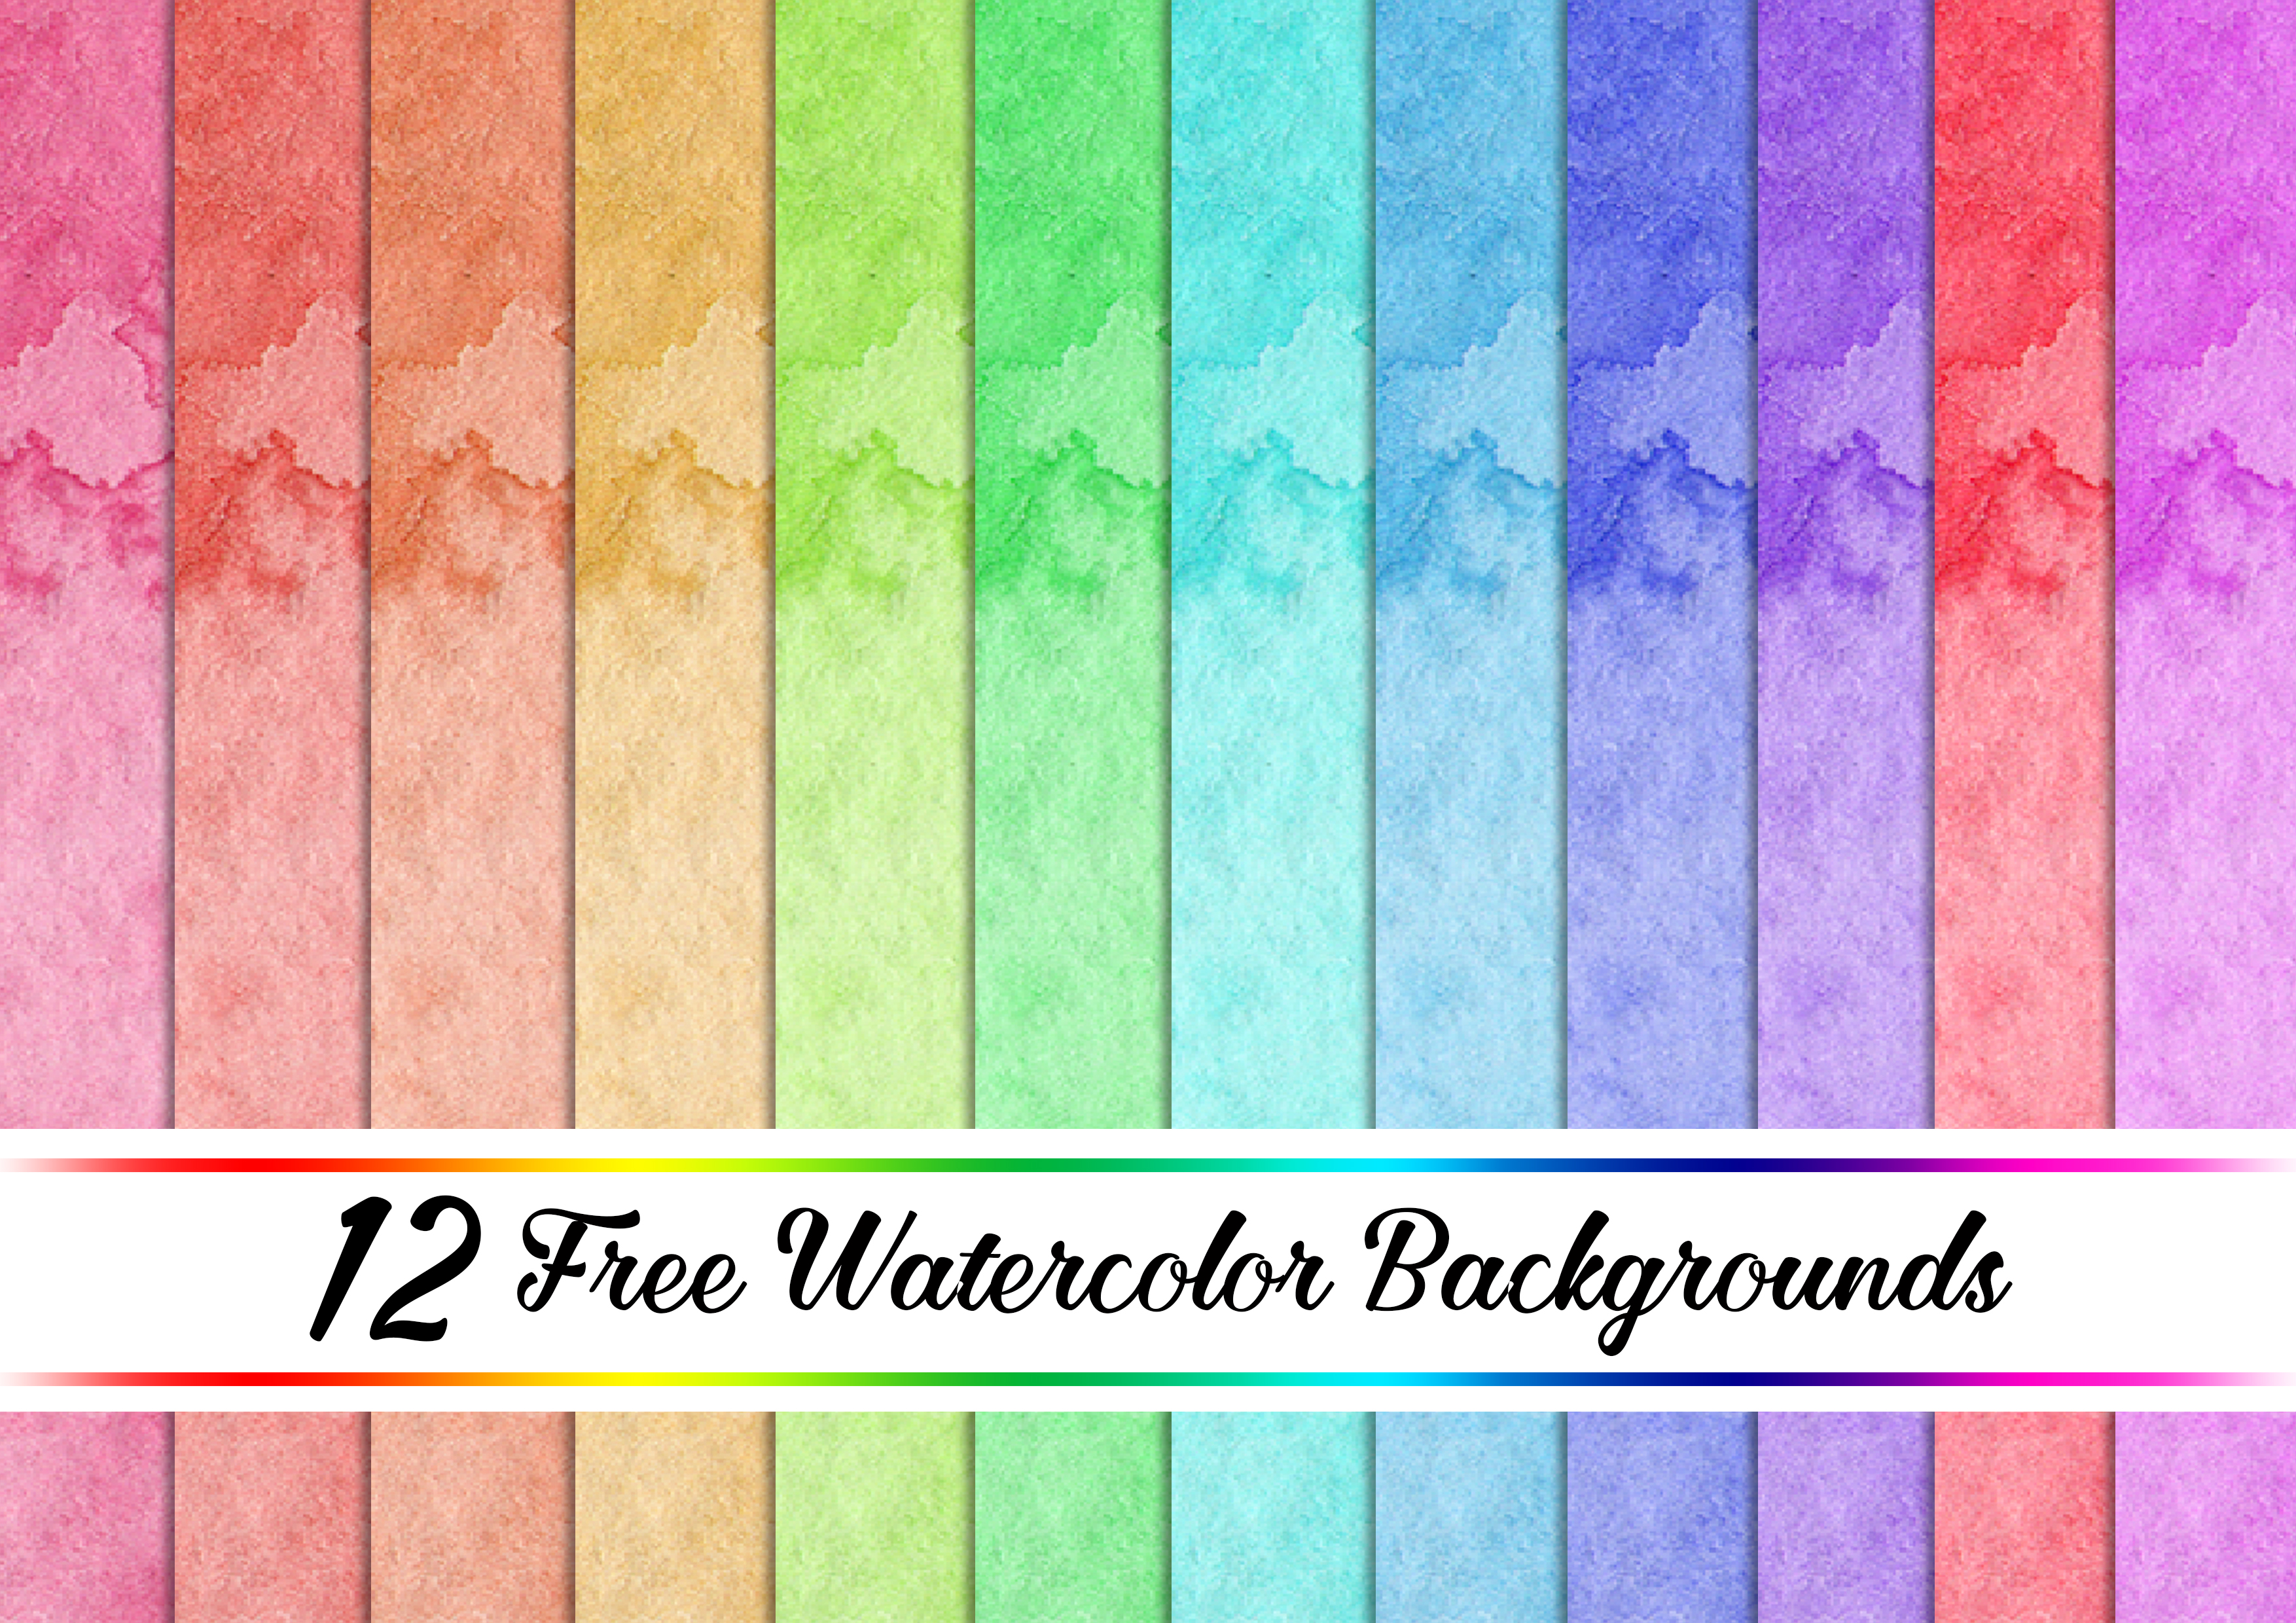 12 Free Watercolour Backgrounds by trendsandme